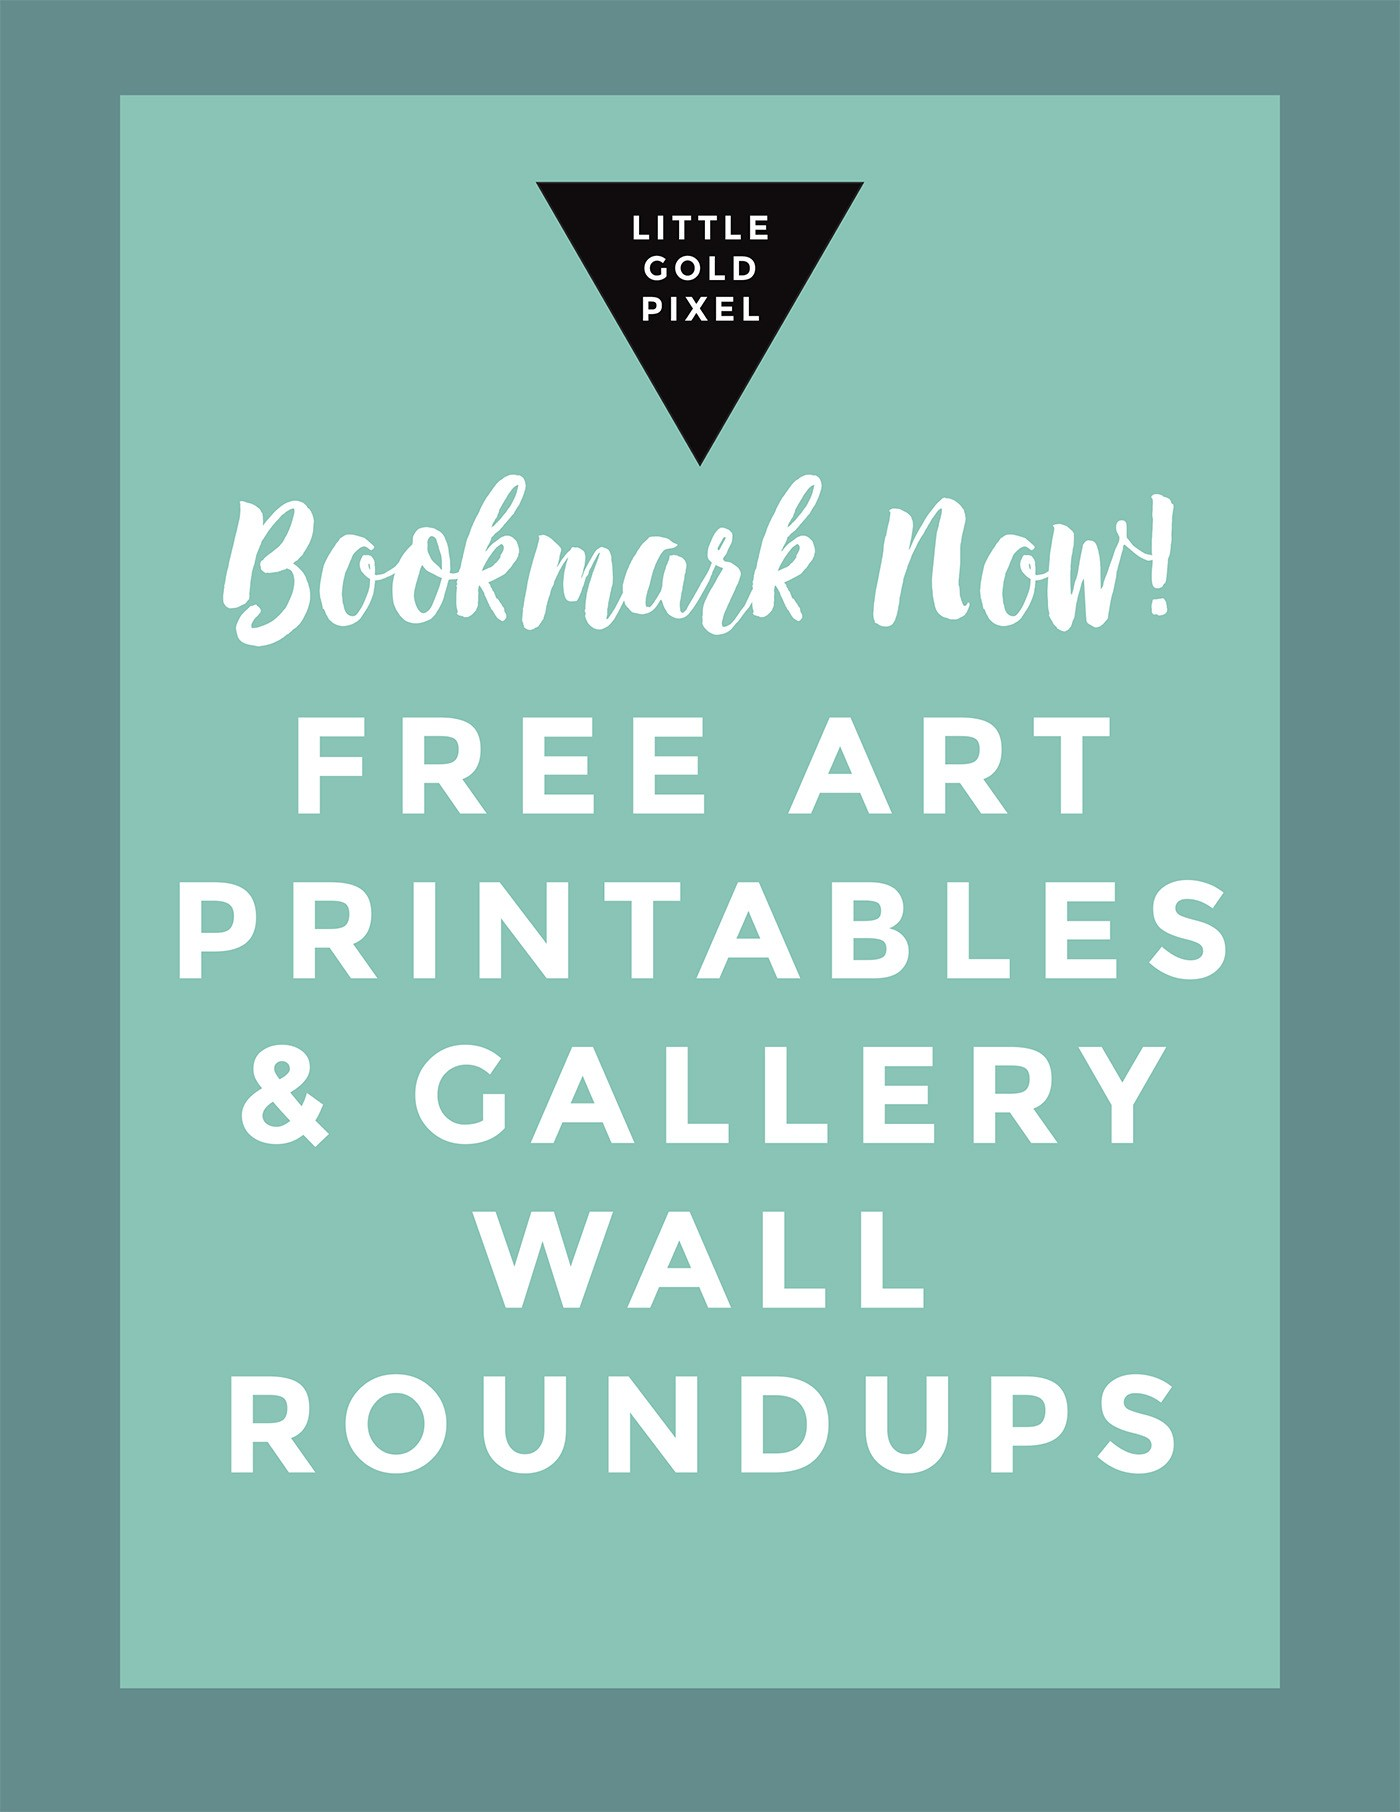 Free Printables Design Amp Gallery Wall Resources Little Gold Pixel